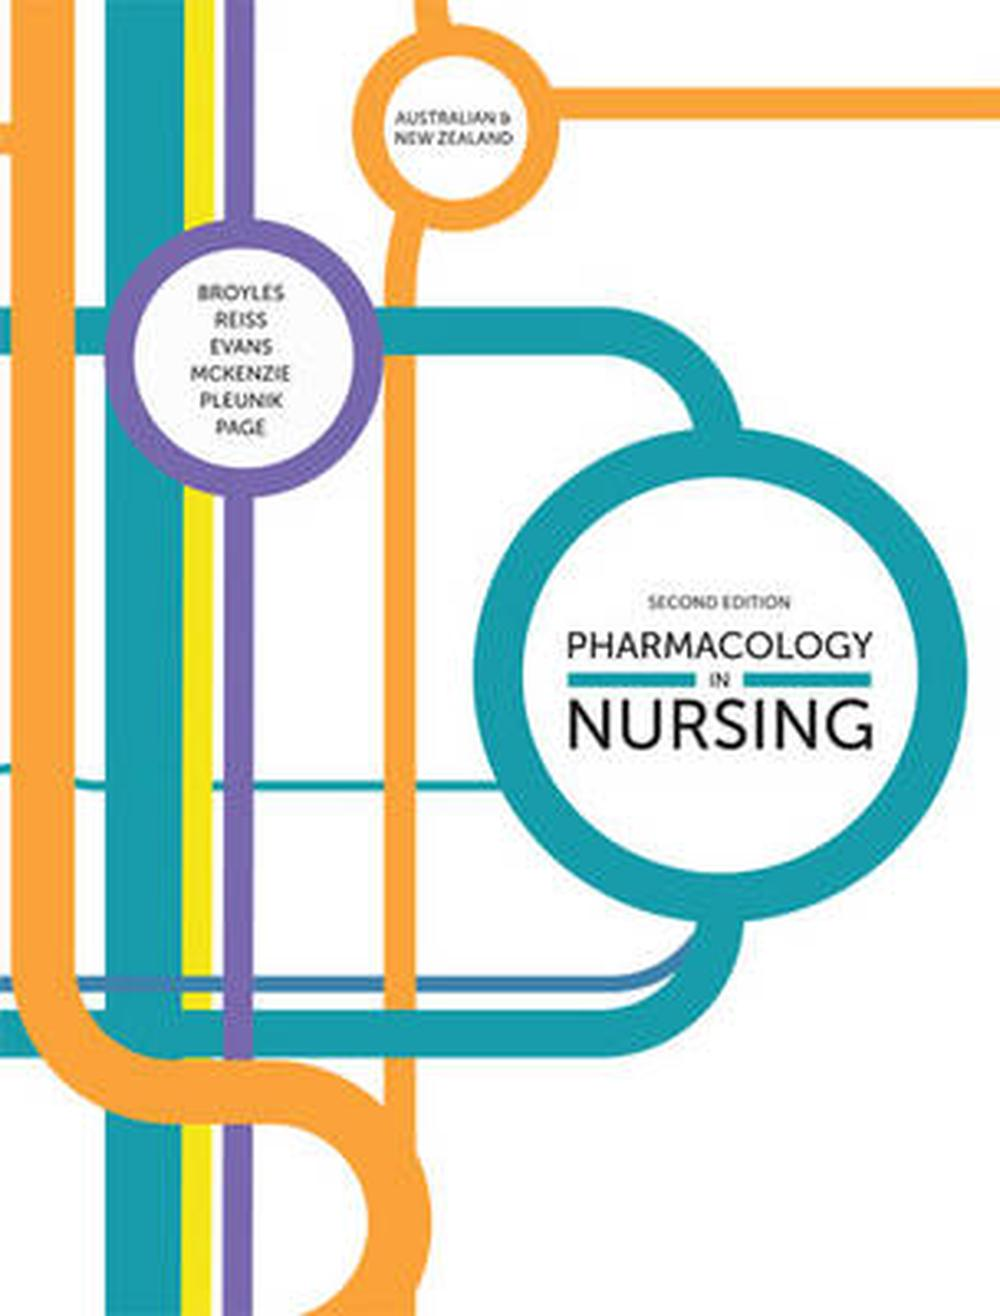 Pharmacology in Nursing: Australian & New Zealand Edition With Student Resource Access 12 Months, 2nd Edition